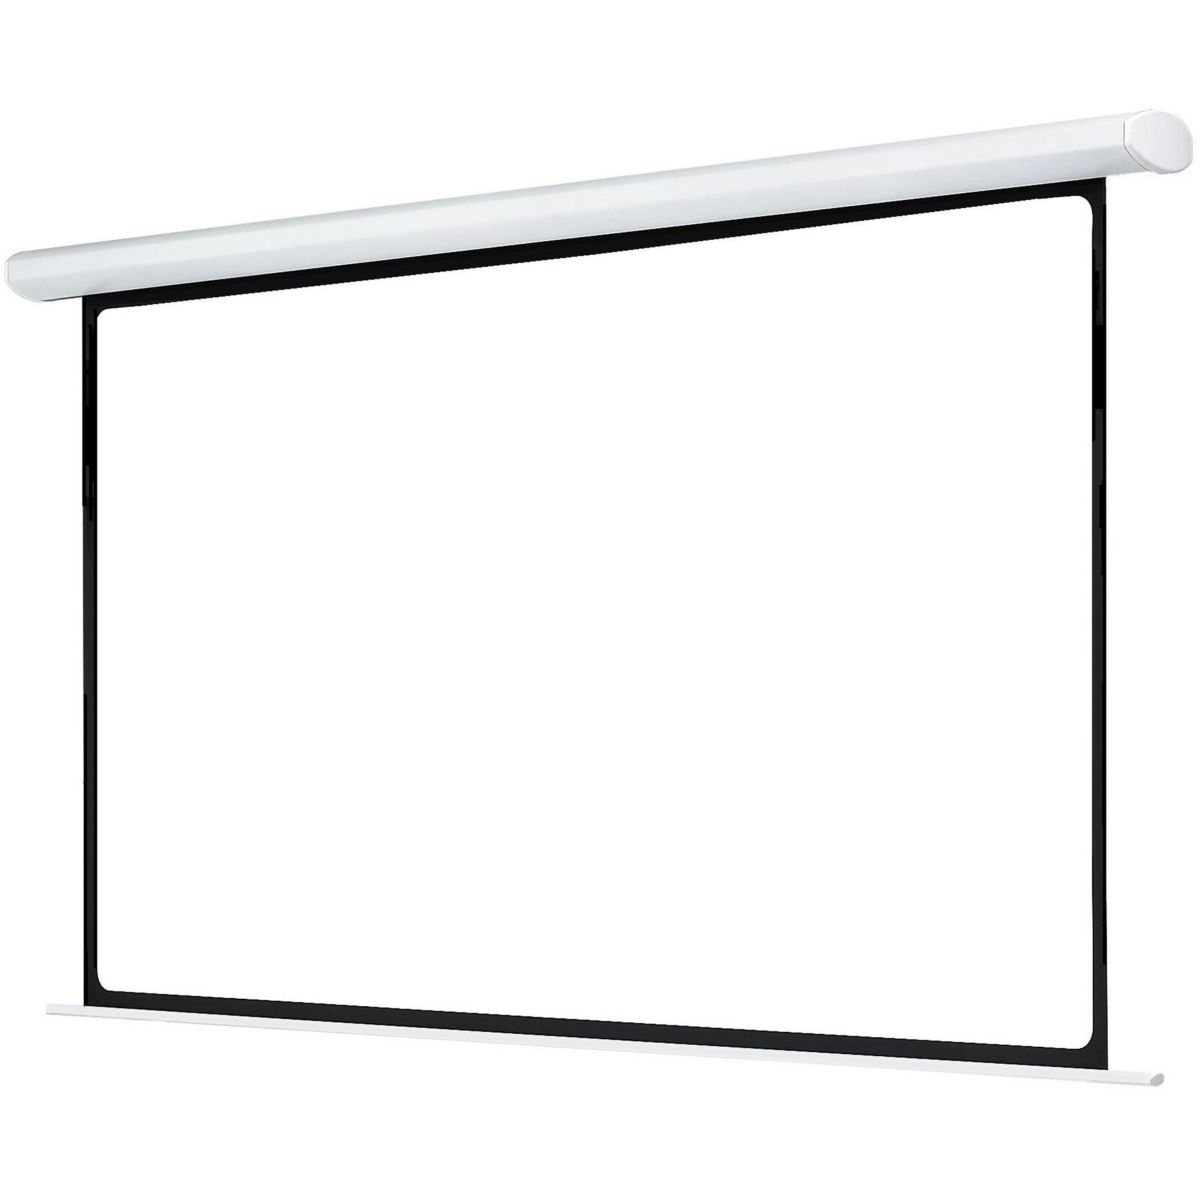 Ecran de projection oray hcm4sb1 112*200 motoris� - 10% de remise imm�diate avec le code : deal10 (photo)